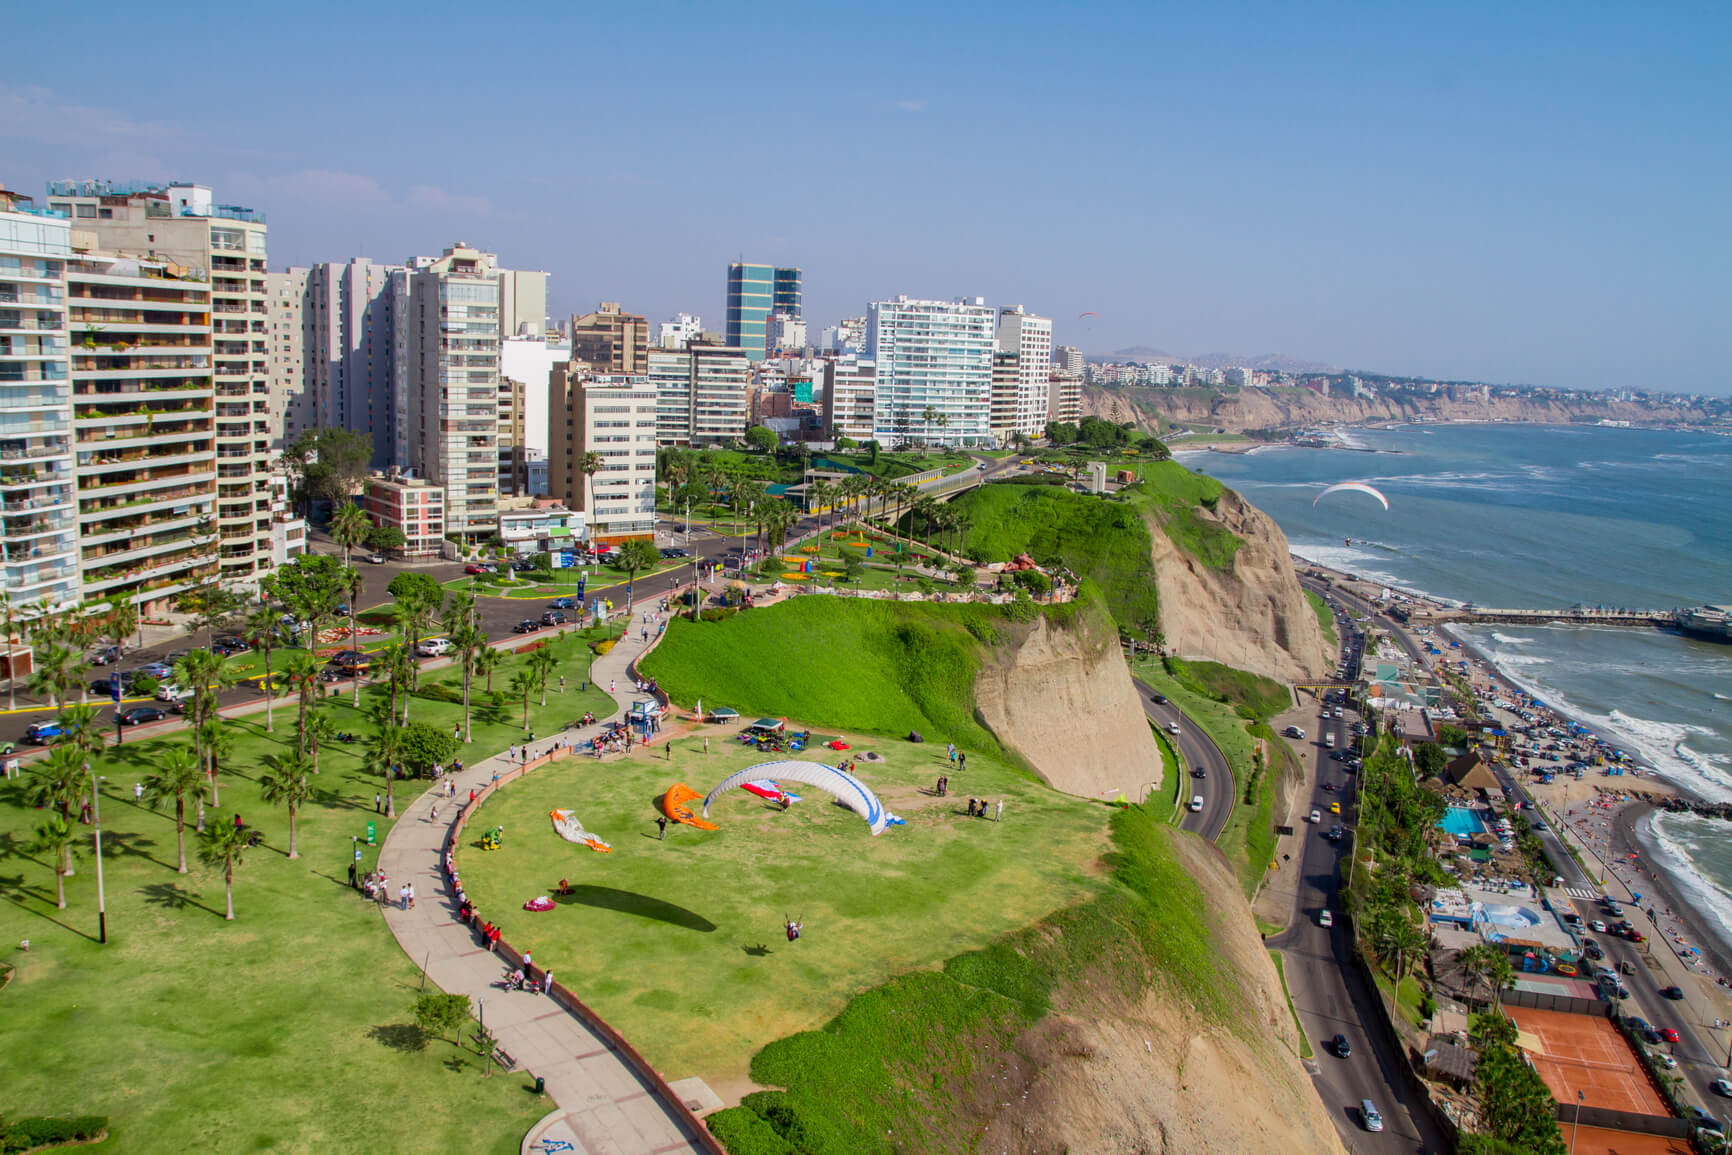 HOT!! Cancun, Mexico to Lima, Peru for only $153 USD roundtrip (Sep-Dec dates)